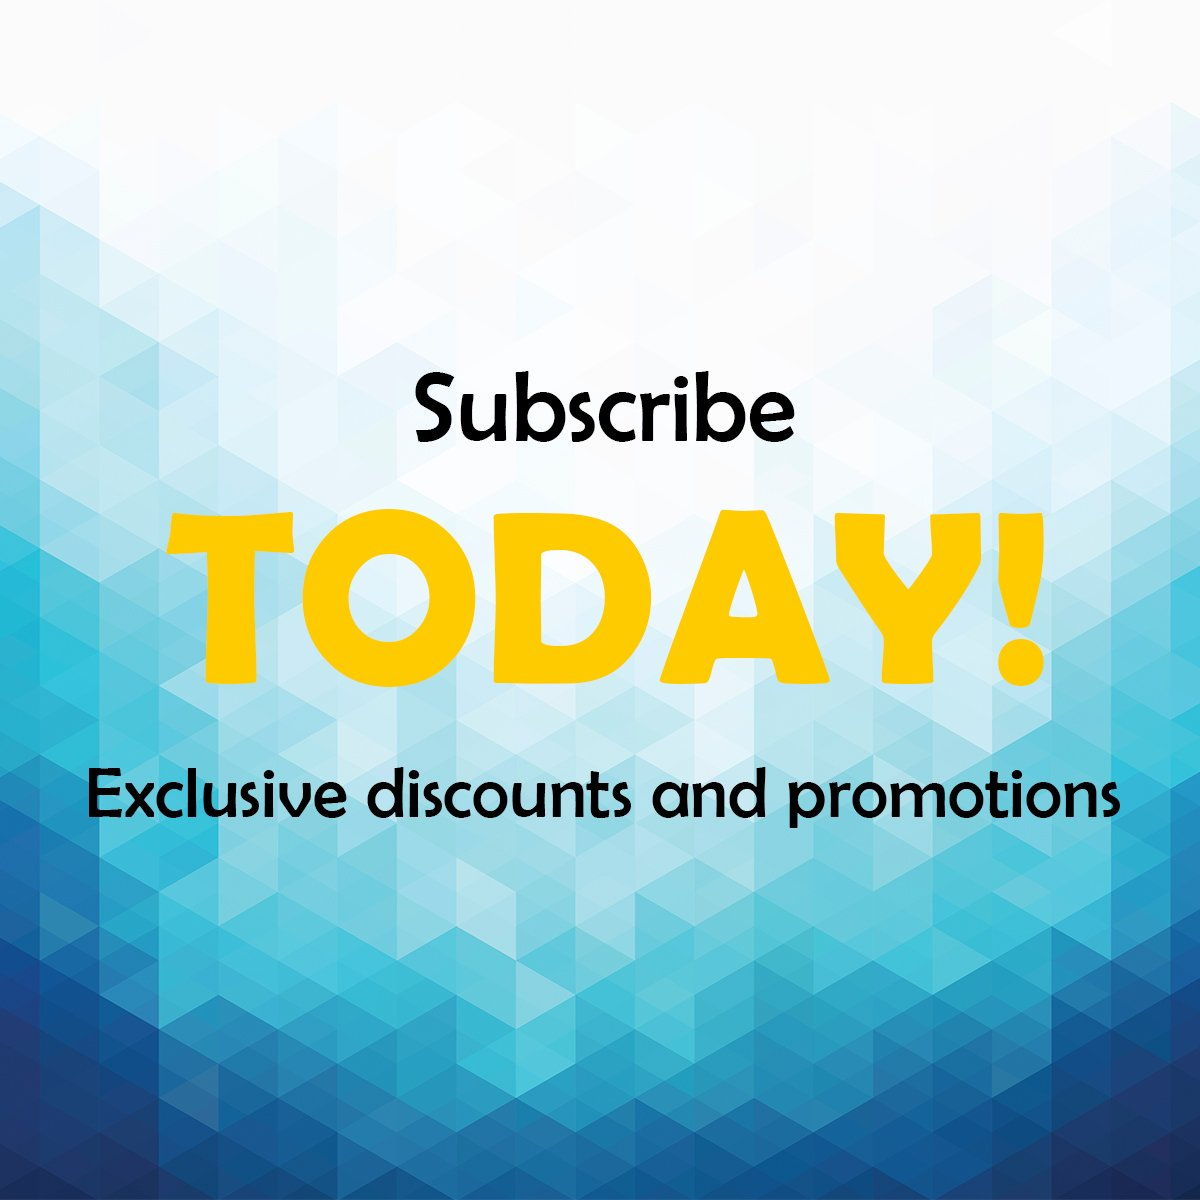 Subscribe to our mailing list to receive exclusive discounts and promotion!  Become a member today! https://t.co/RmLO3RLzWW https://t.co/s9wS6LAJtY